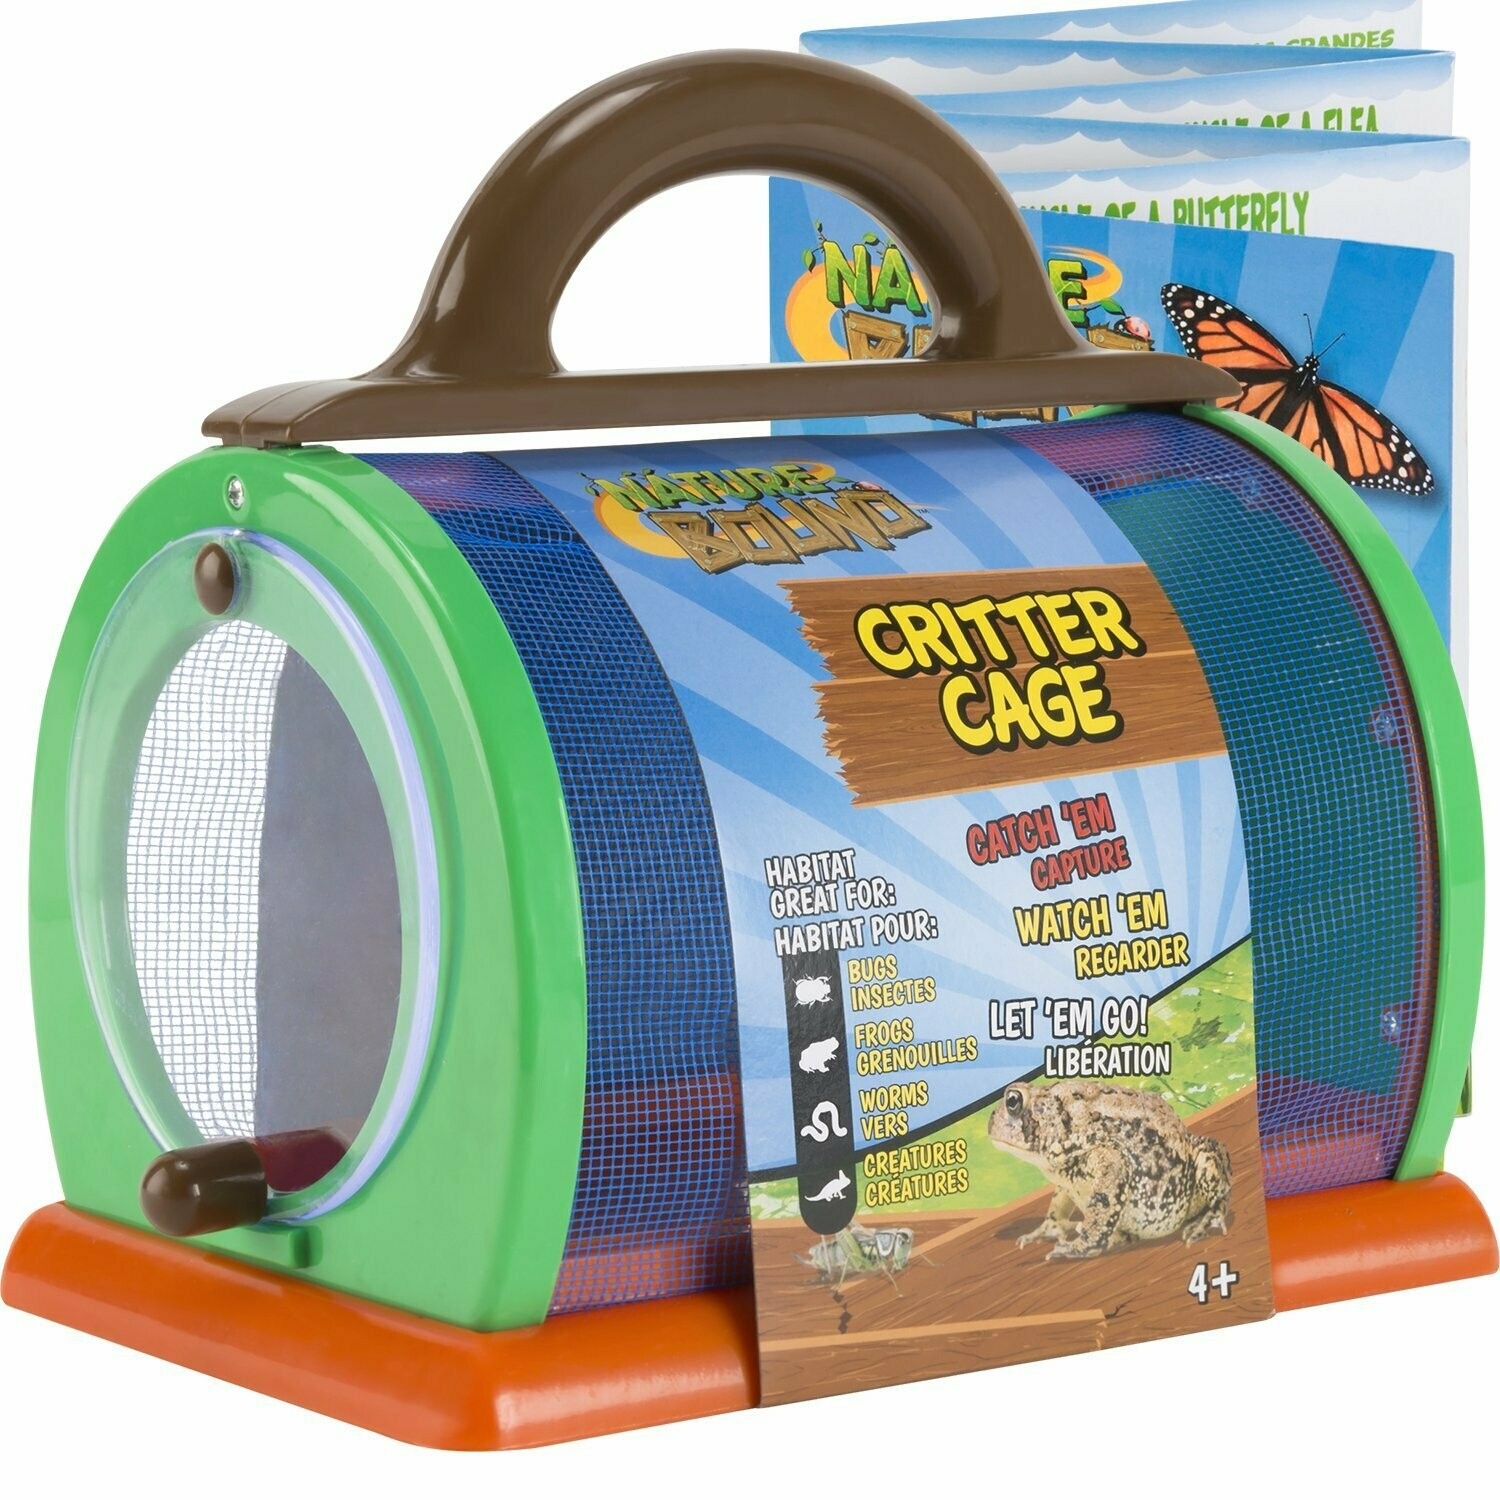 CRITTER CAGE